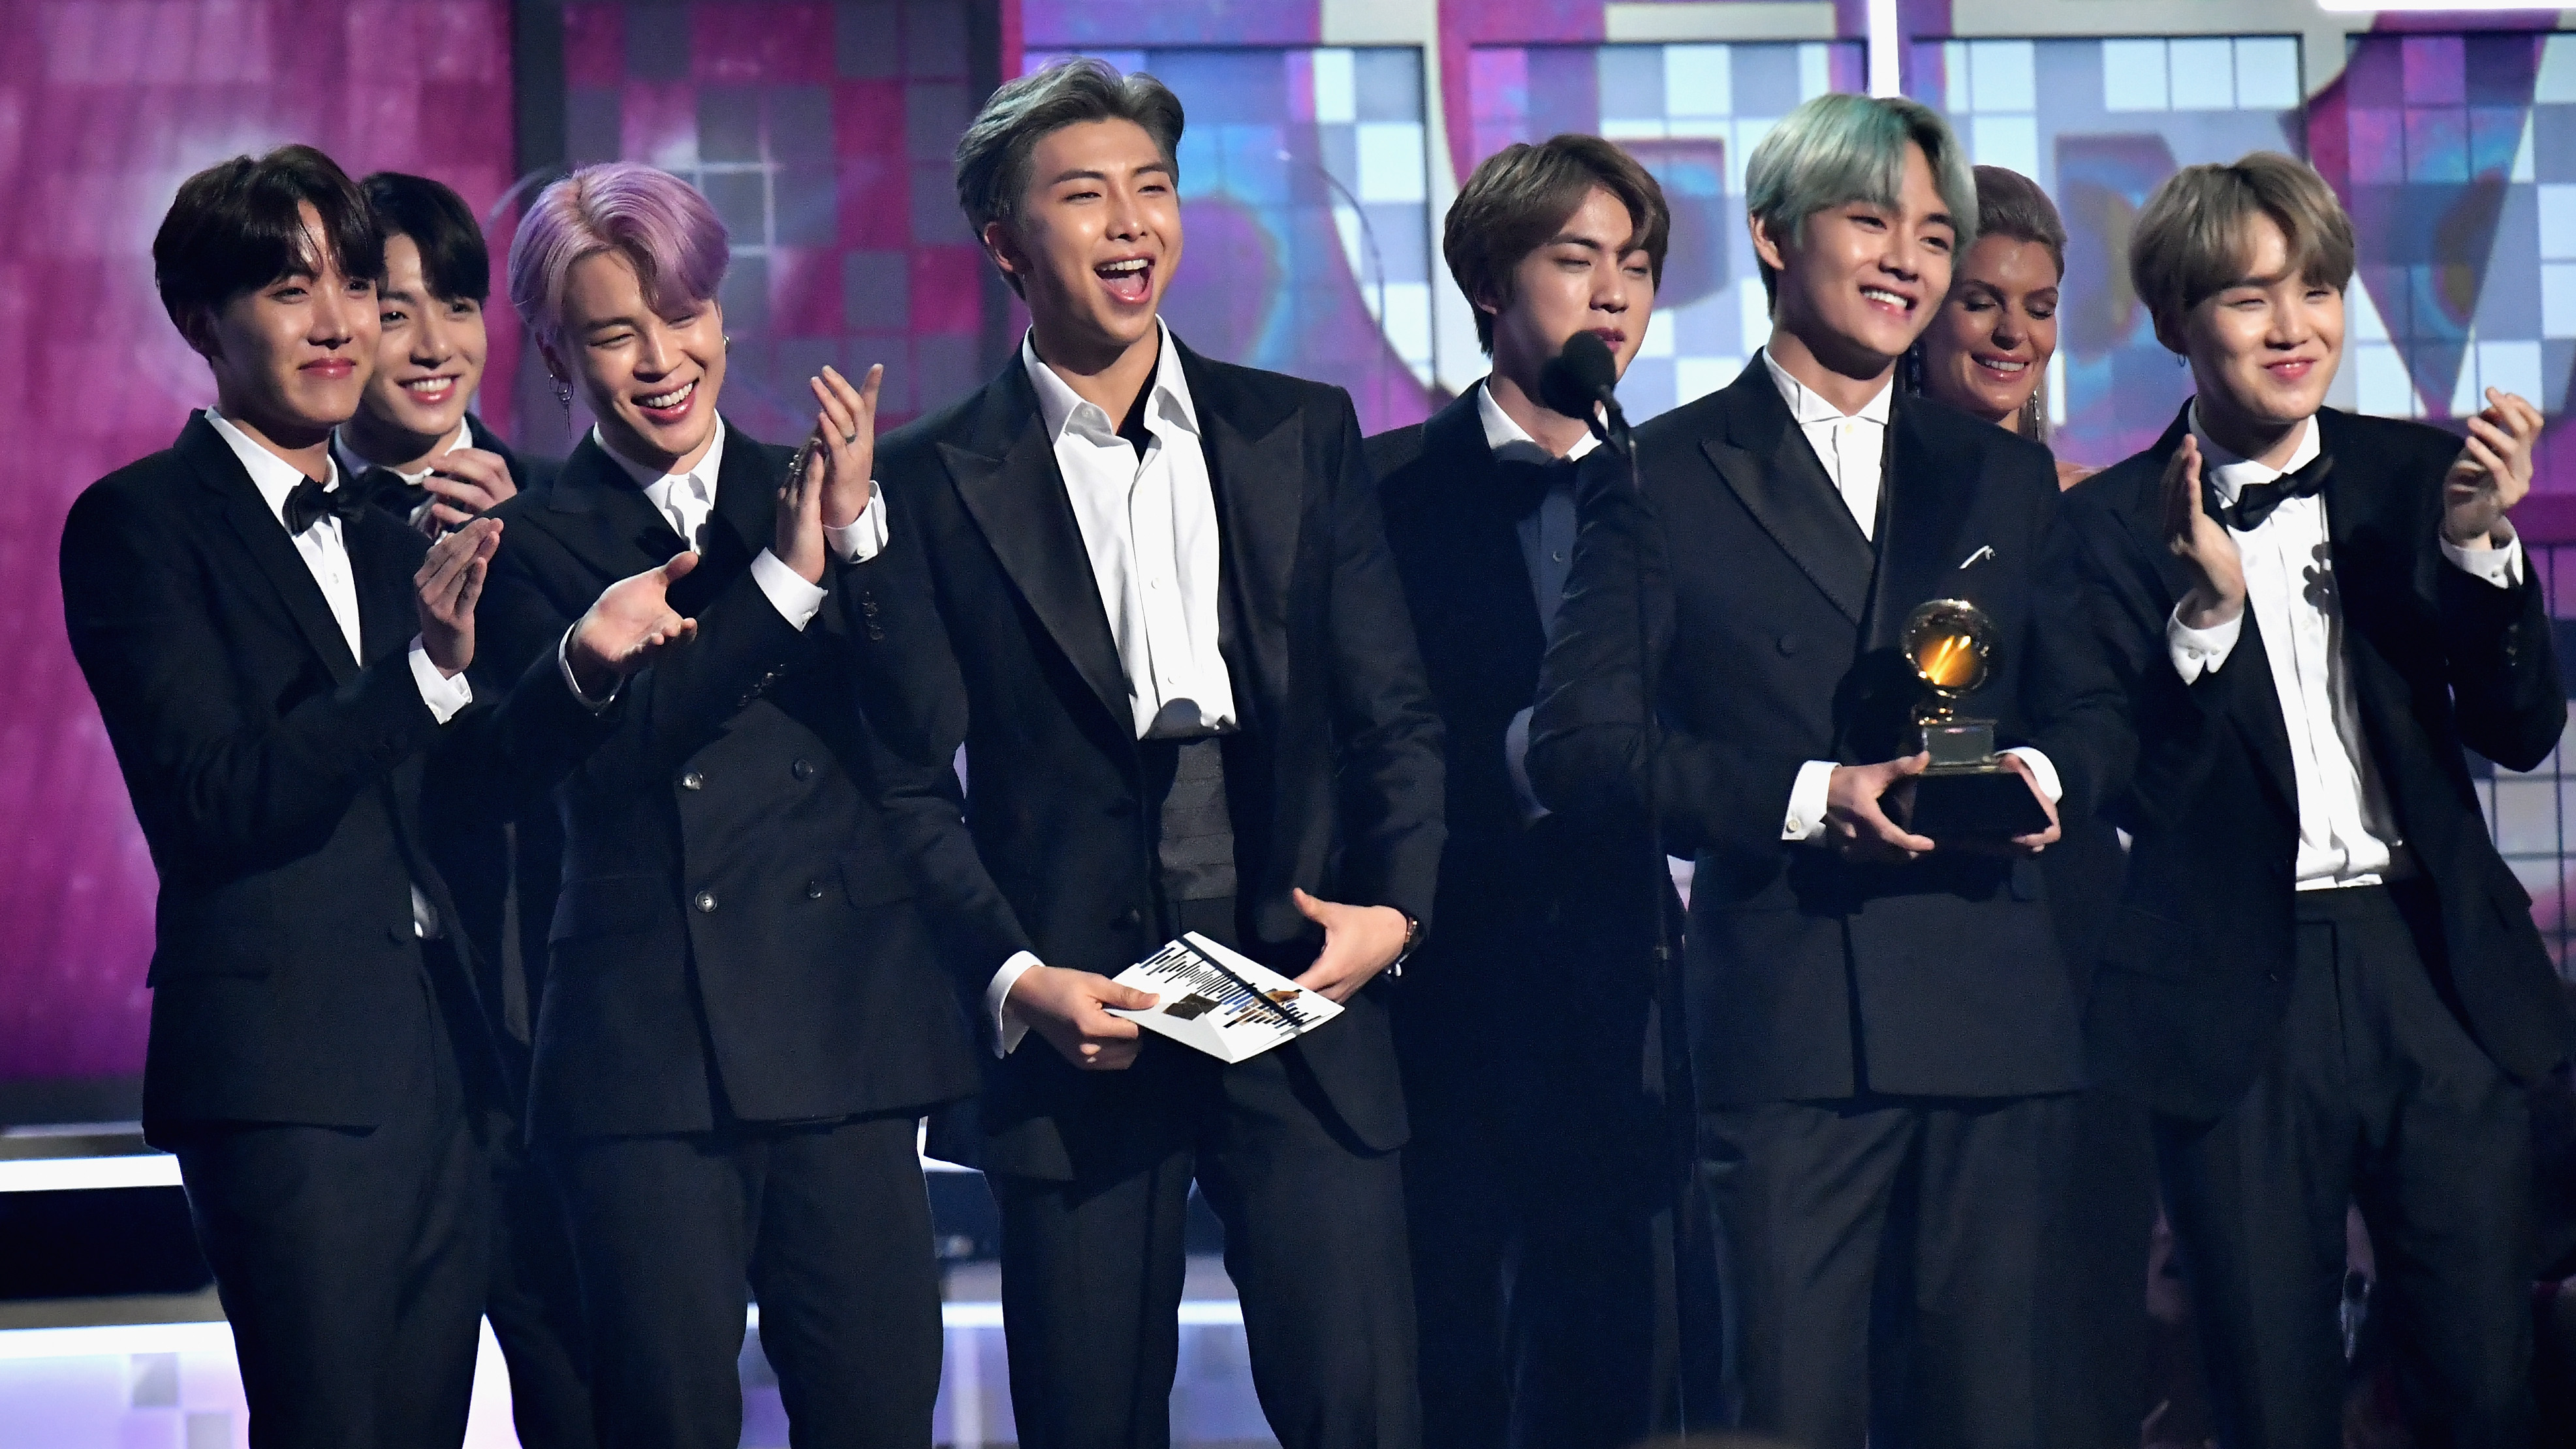 What Song Could Bts Perform At The 2021 Grammy Awards